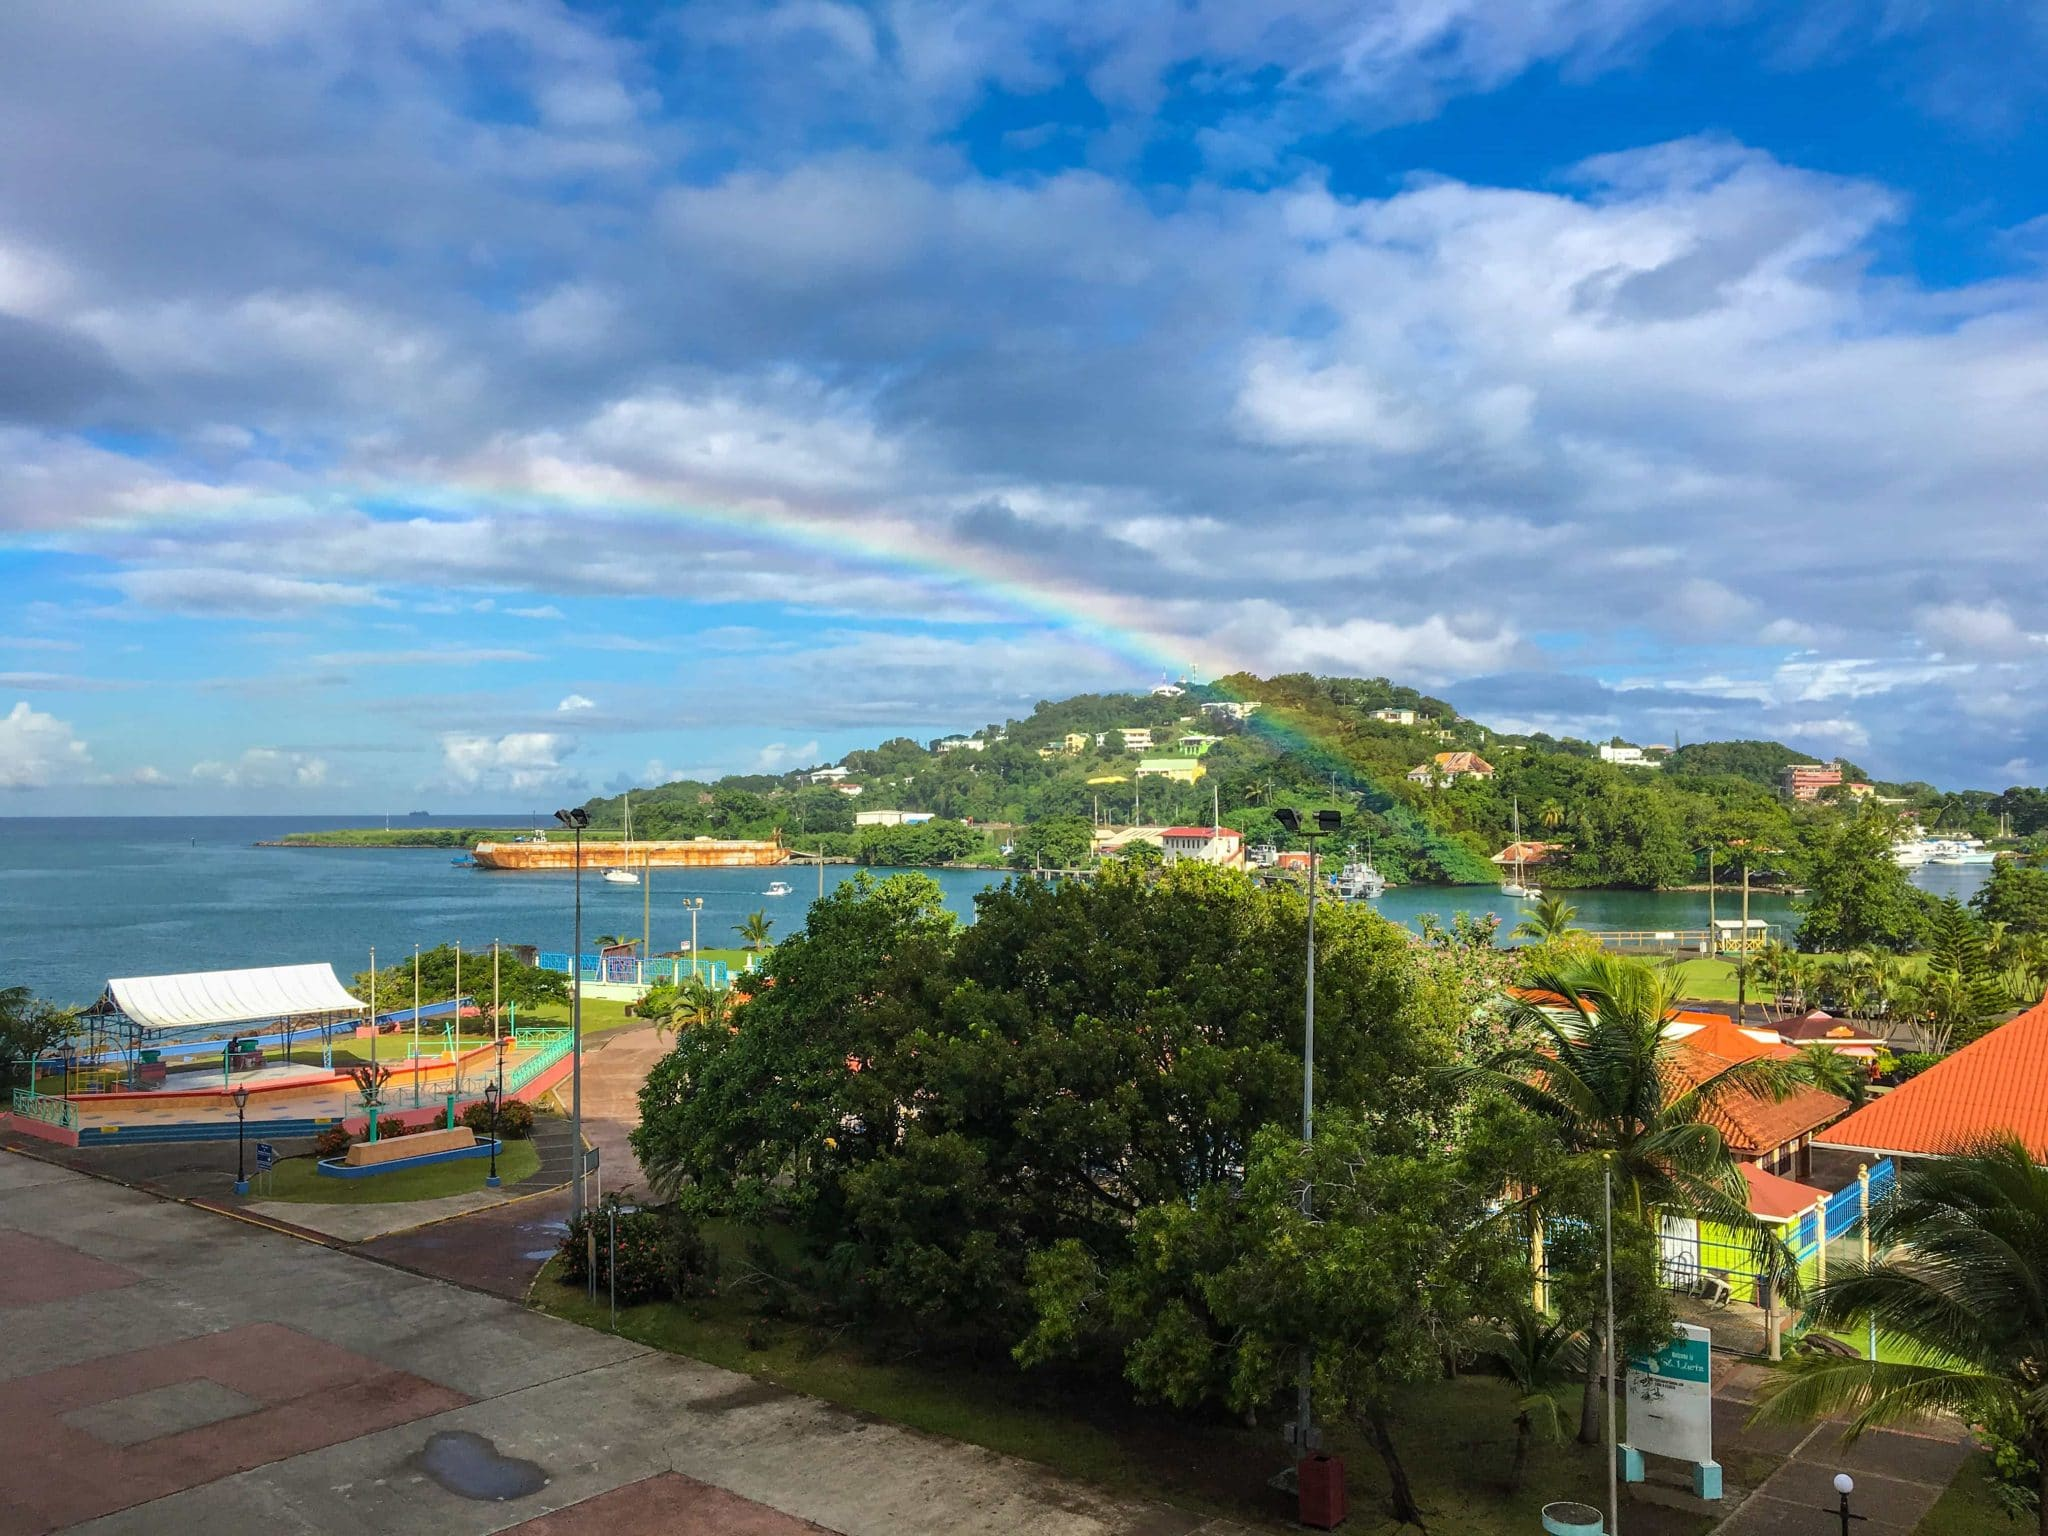 A rainbow in Castries